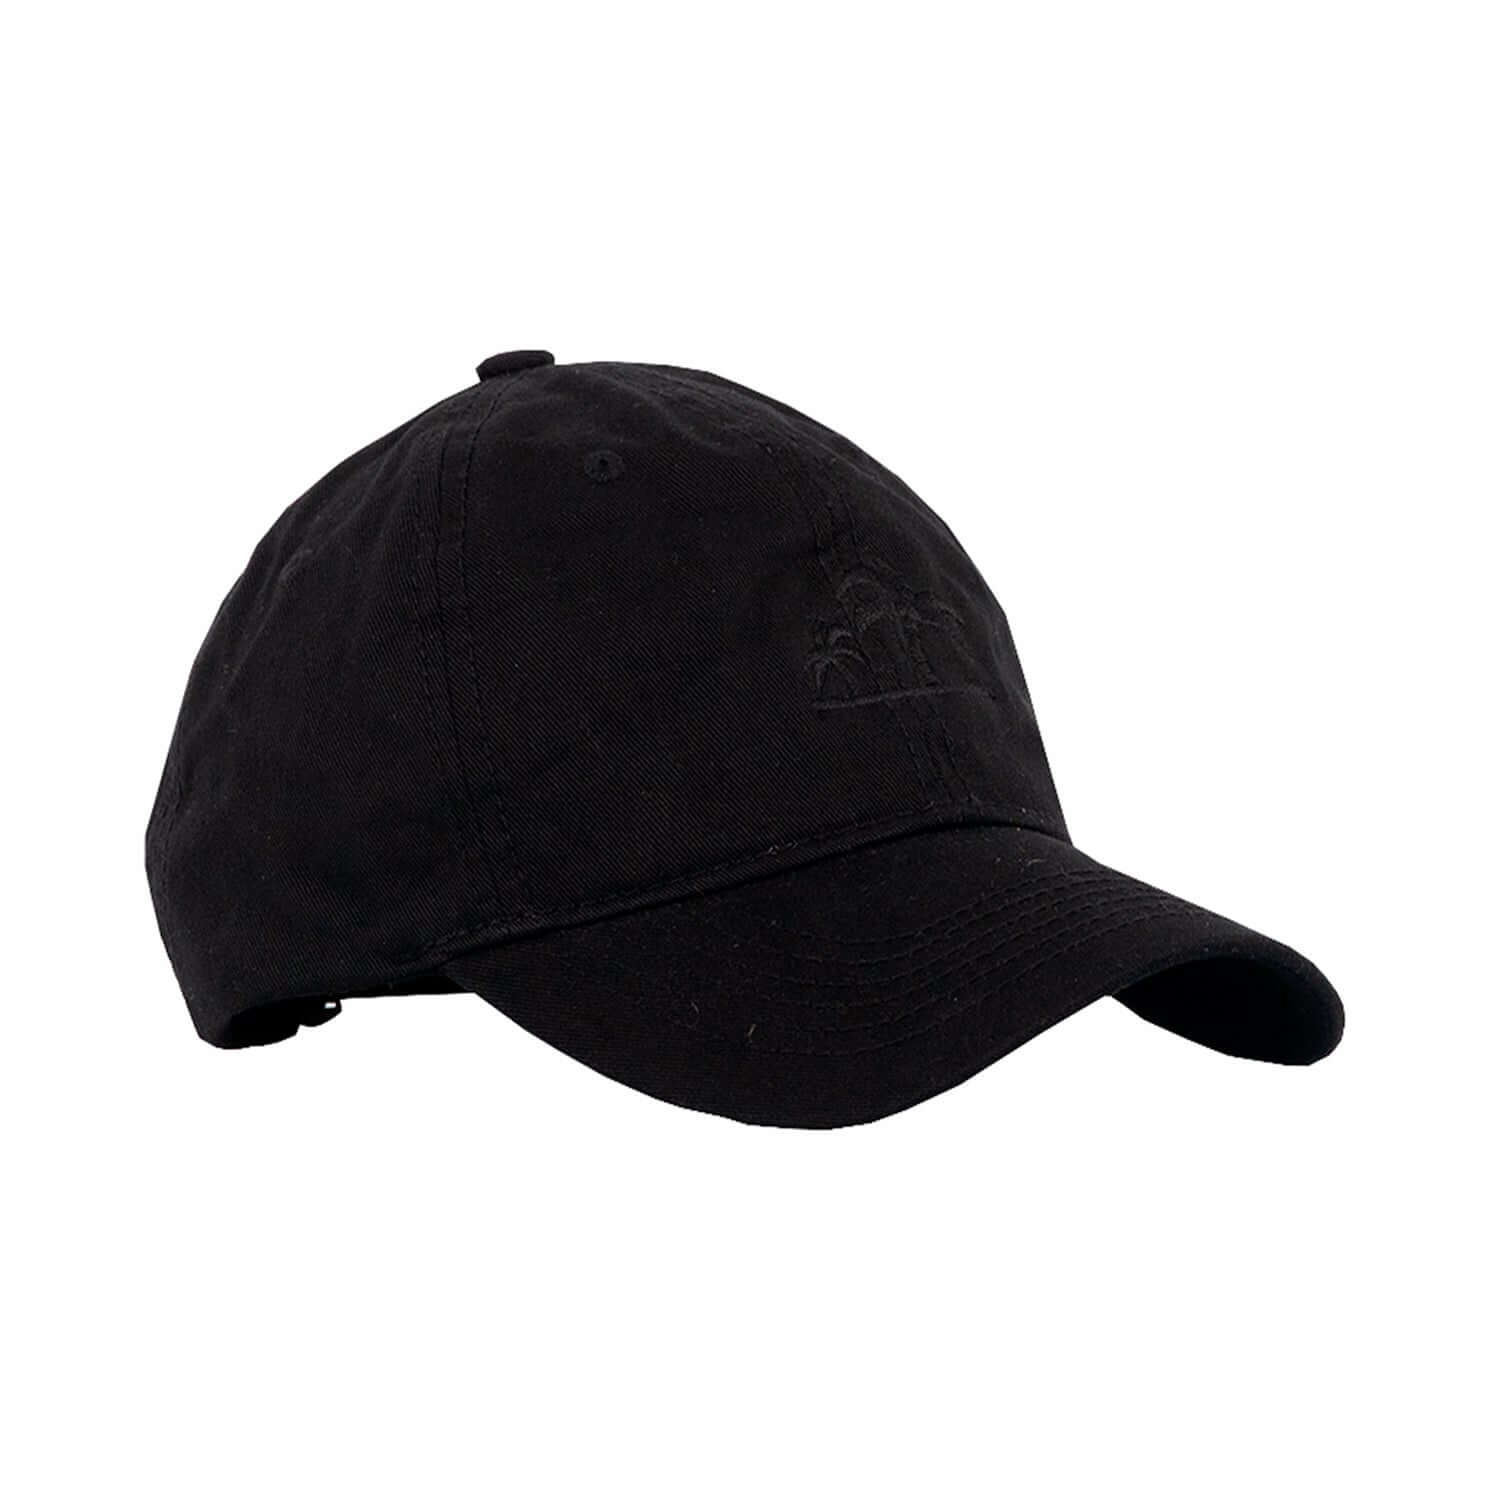 BLACK HAT - Clorofila Sea Wear